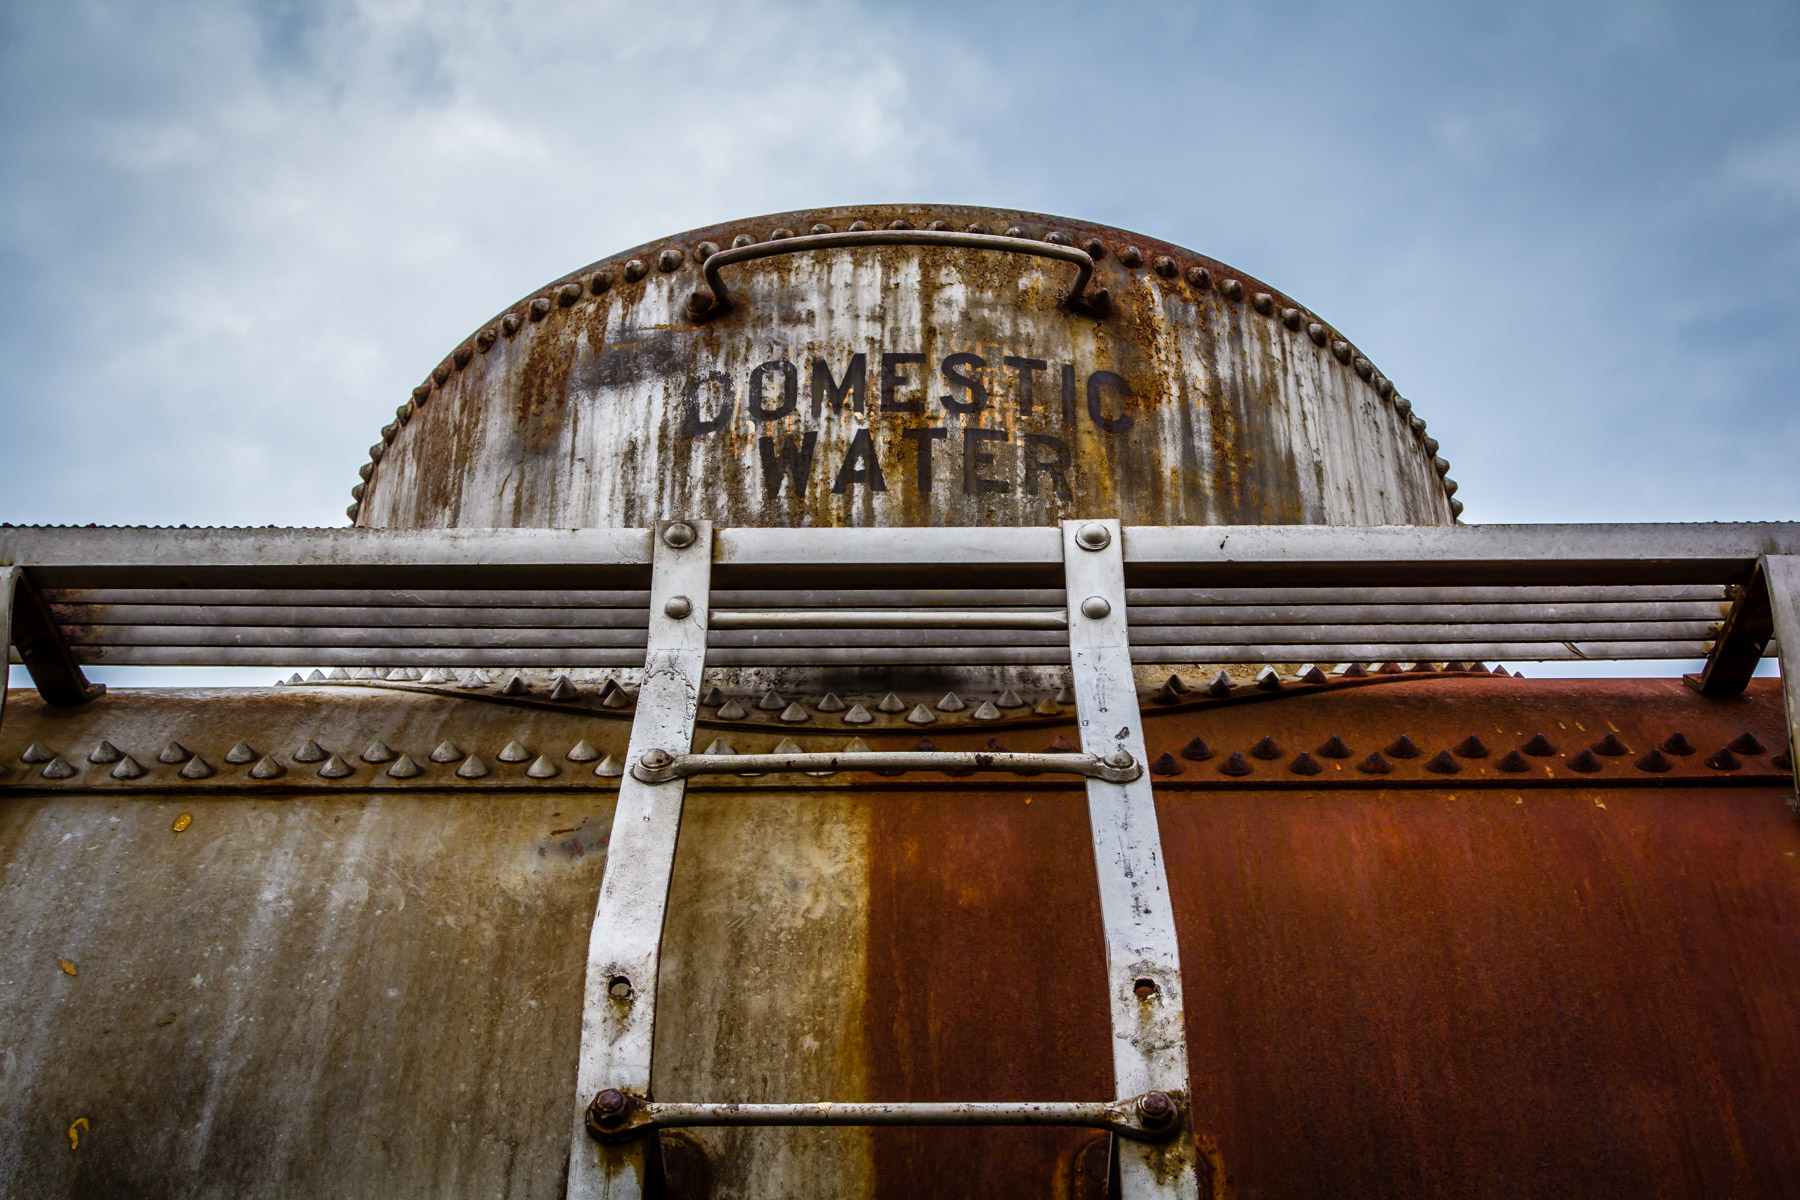 Detail of a railroad tank car spotted in Grapevine, Texas.